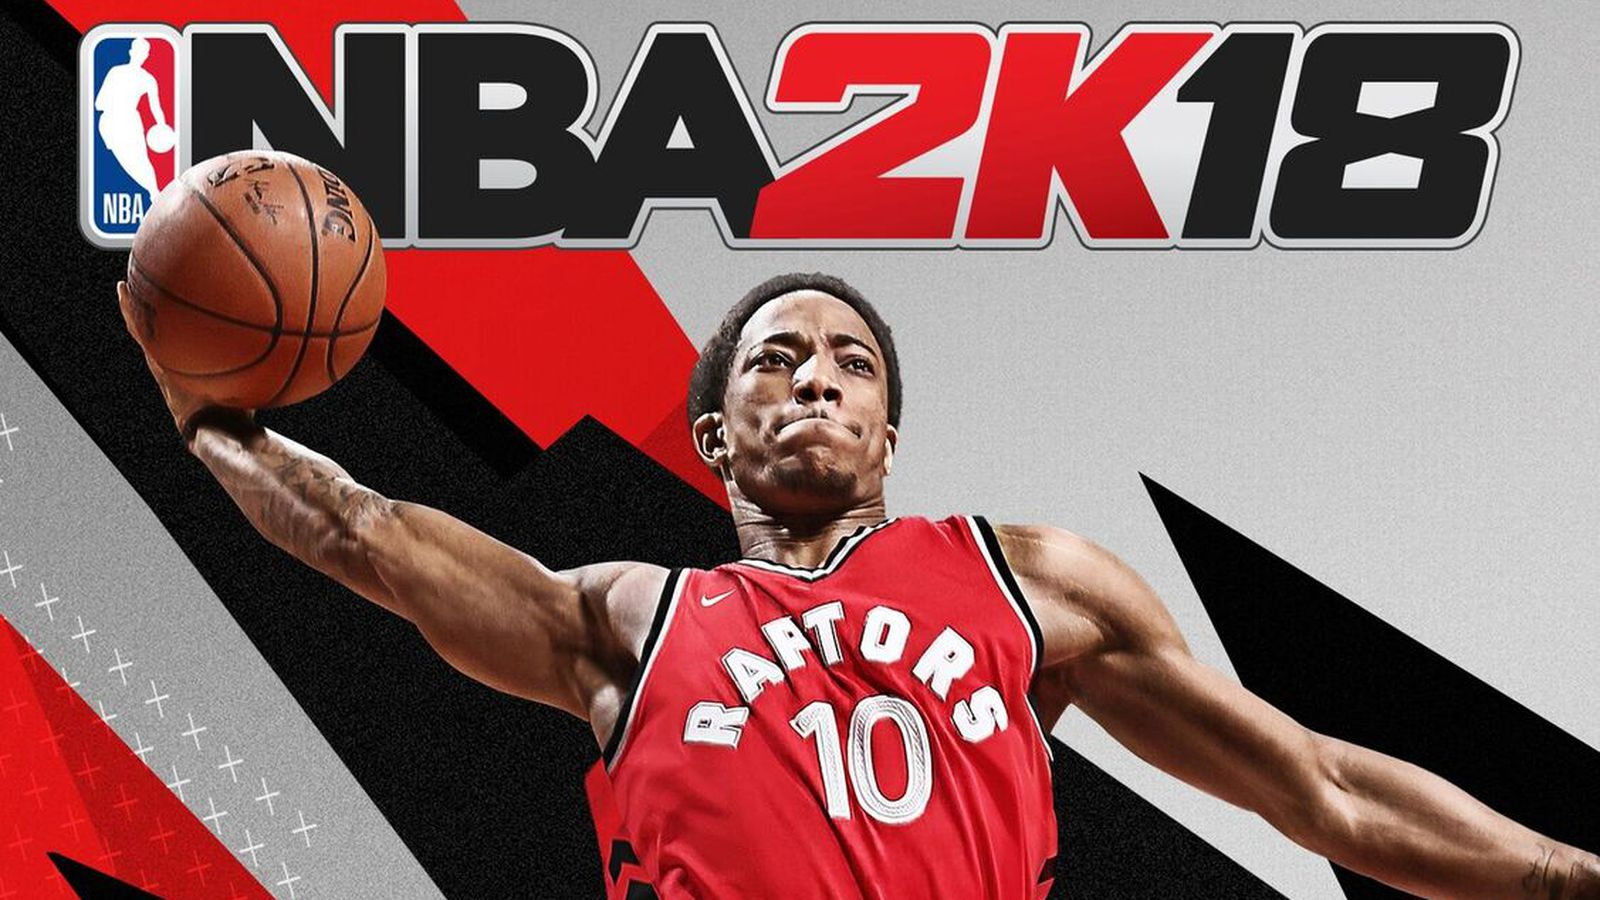 Demar Derozan Is The First Athlete To Ever Be On Nba 2k18